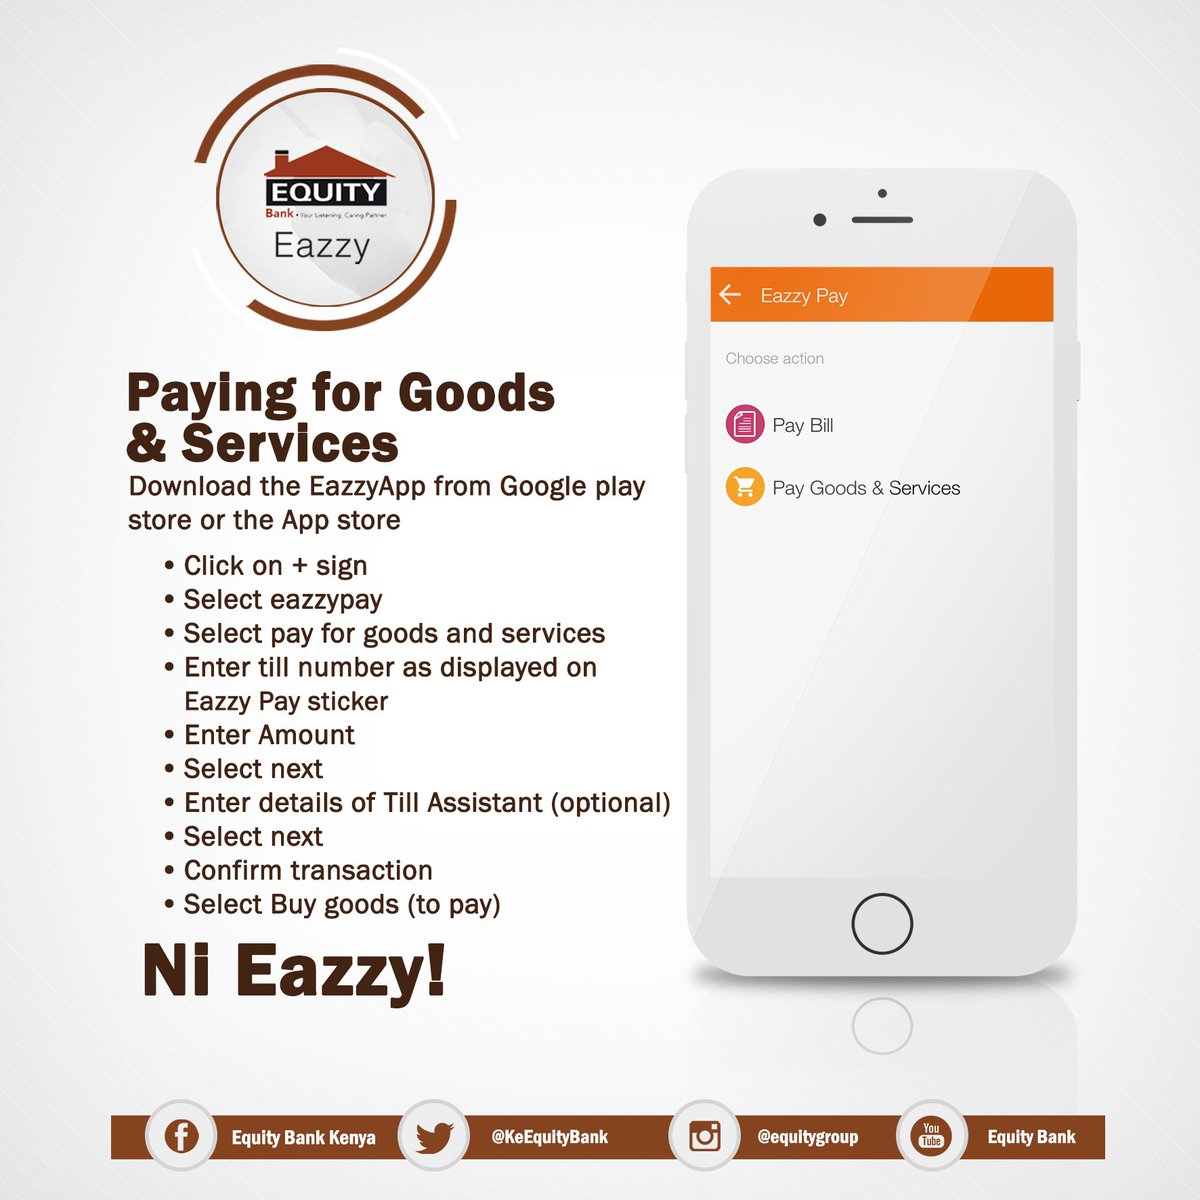 Equity bank kenya on twitter hi merchants accepting eazzy pay as a payment mode have the stickers displayed at their outlets kindly look out for them